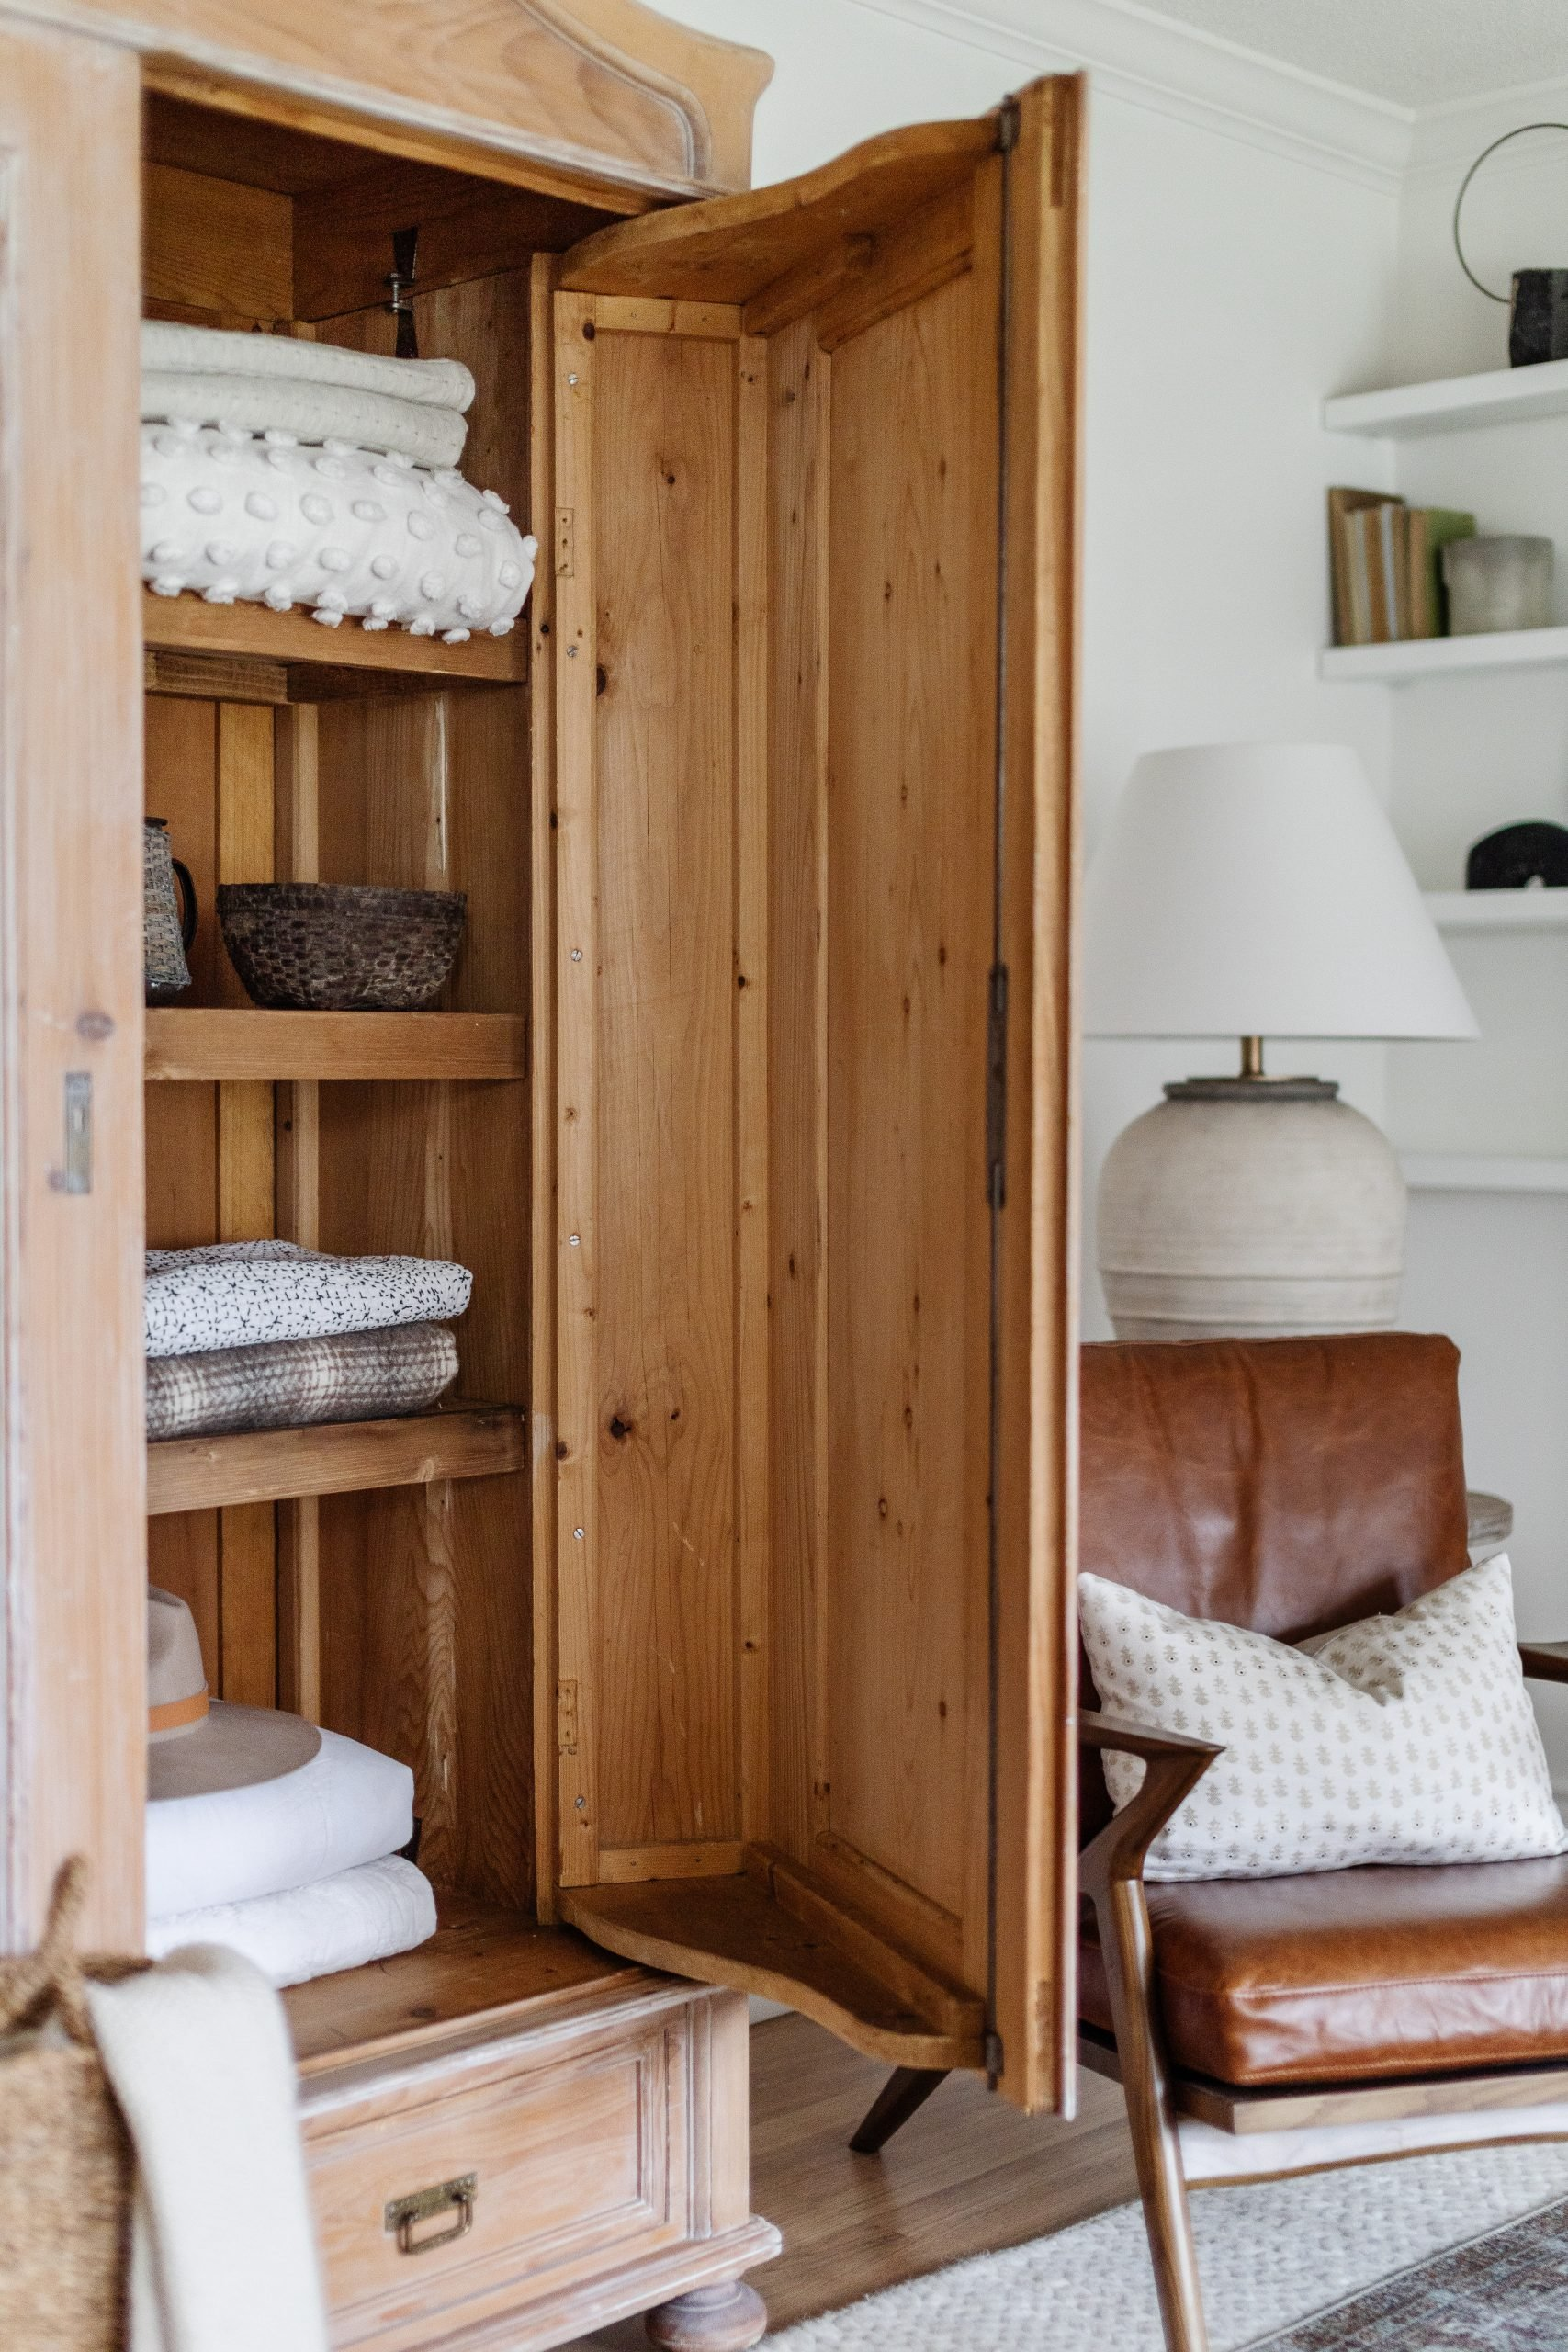 How To Build Easy Shelves In A Wardrobe [or any piece of furniture] Shelf stying in a wardrobe or armoire. 7' whitewashed wardrobe